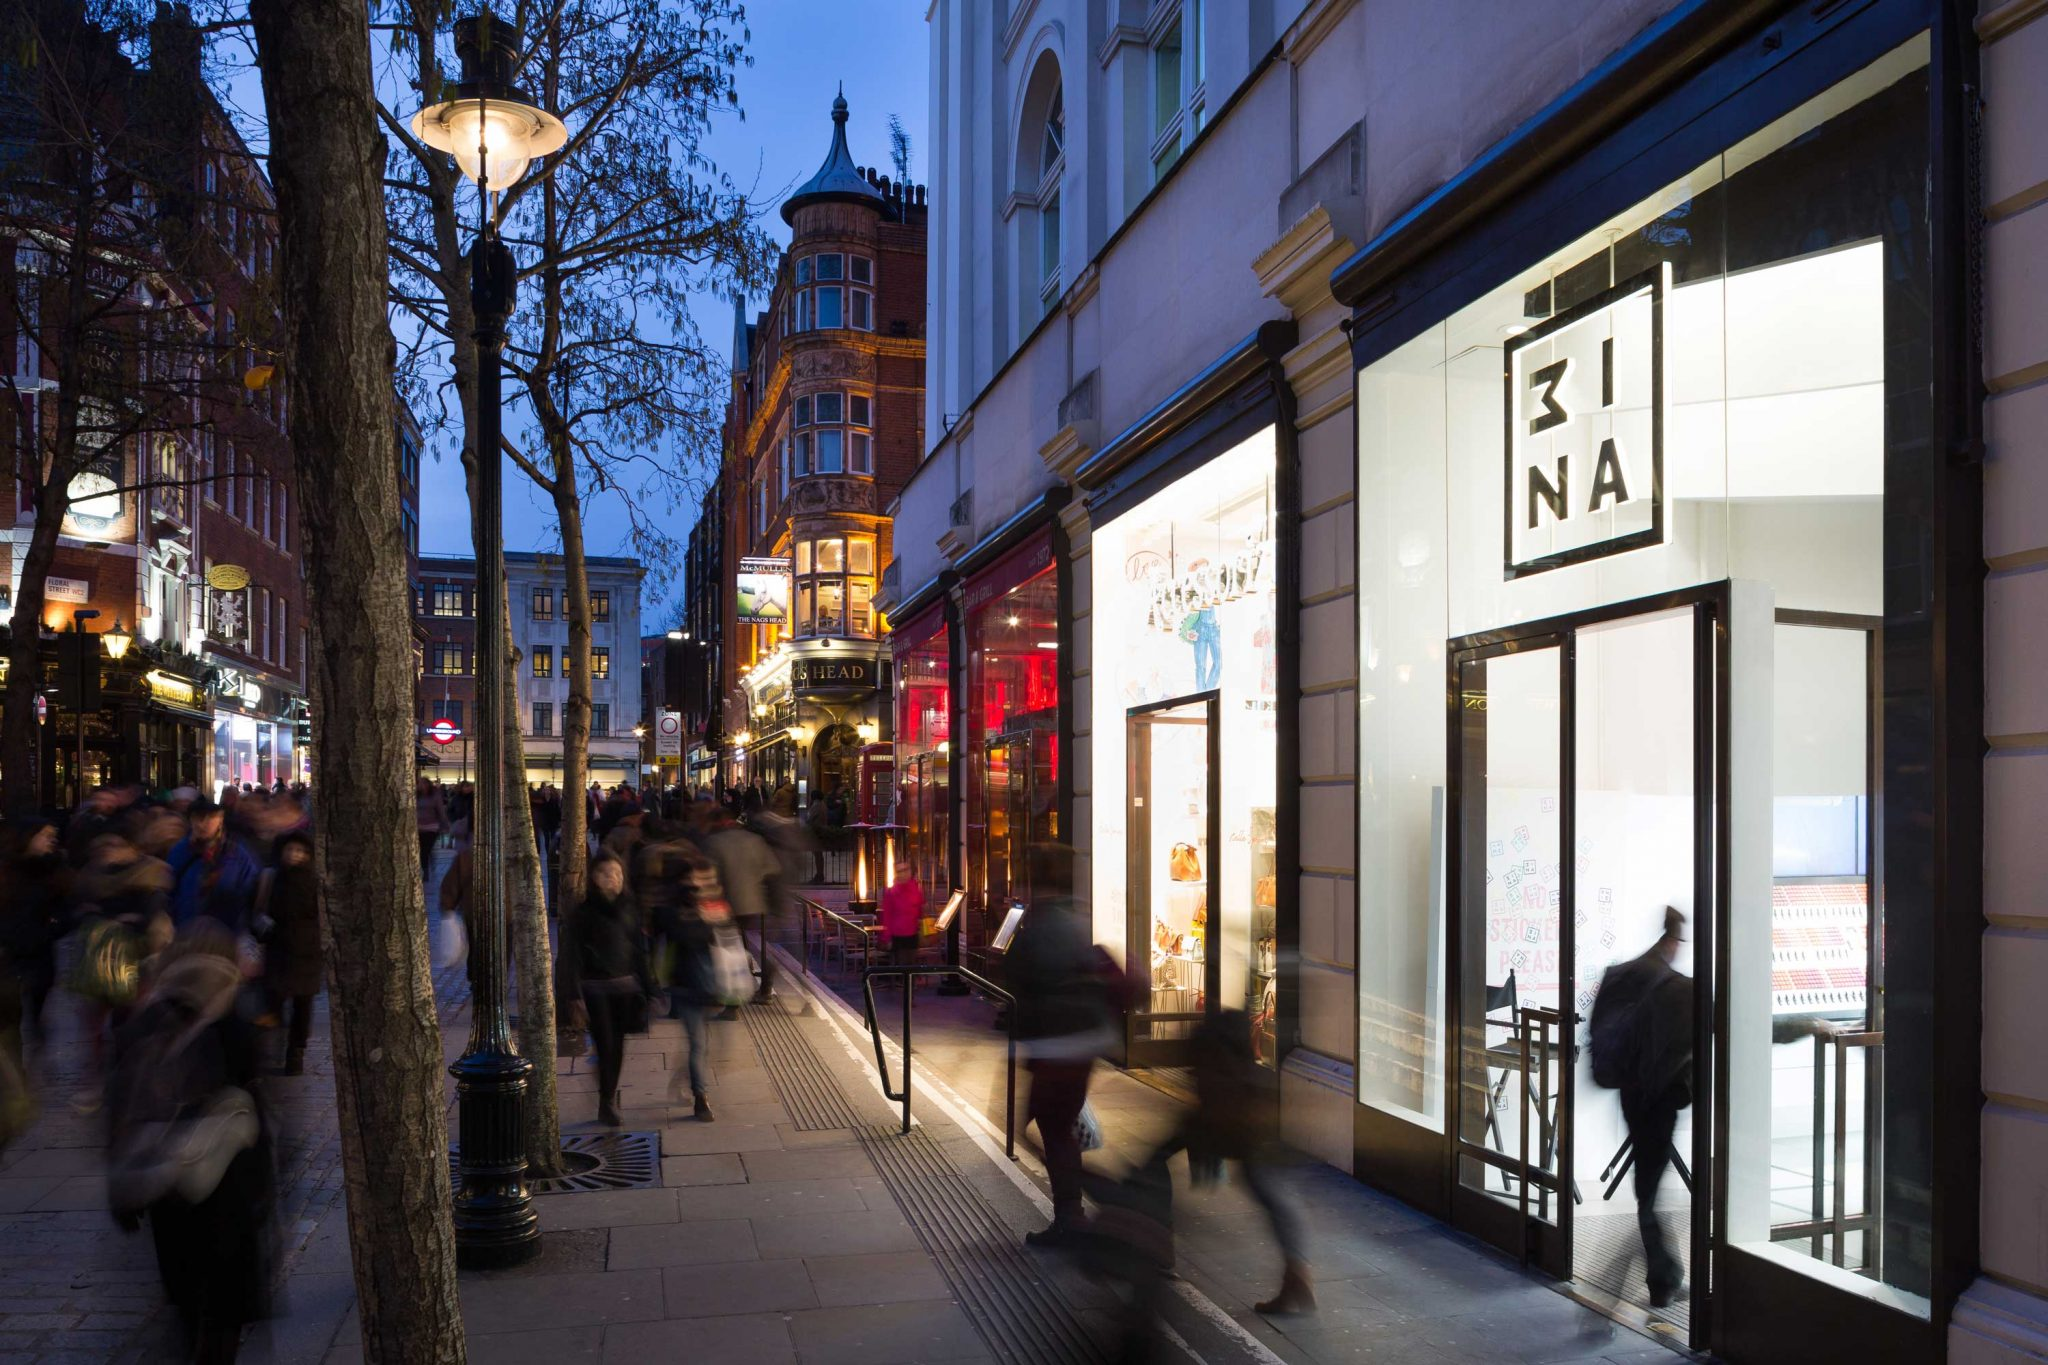 3ina-Covent-Garden